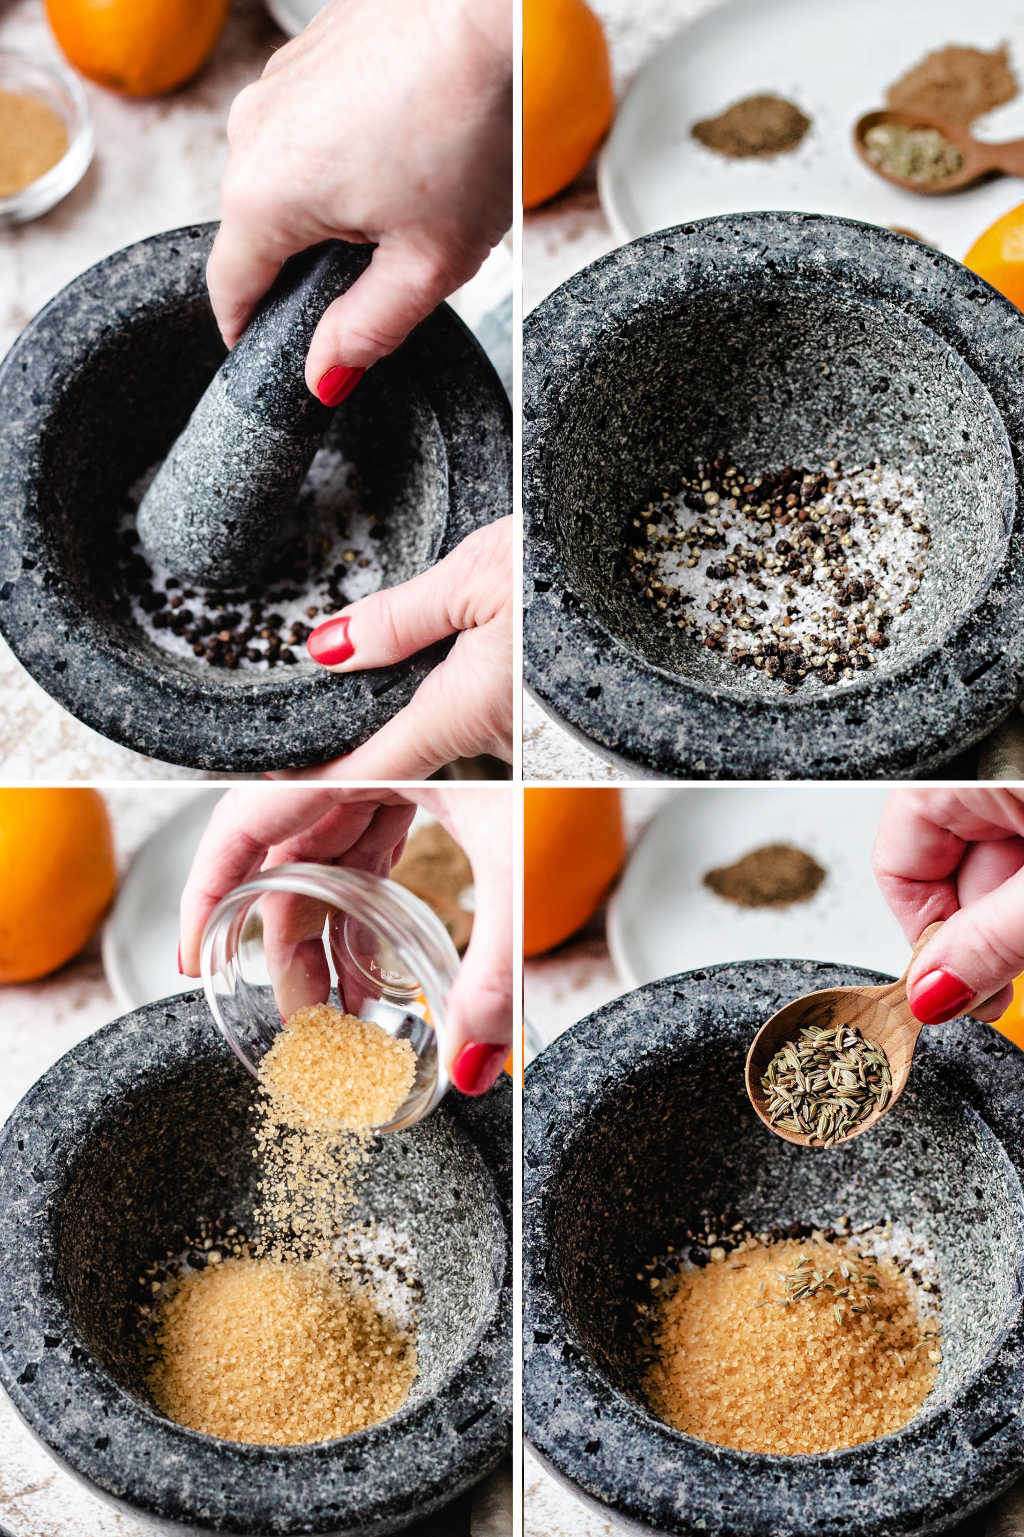 process steps for crushing peppercorns and sea salt in a mortar with a pestle; plus adding turbinado sugar and fennel seeds.